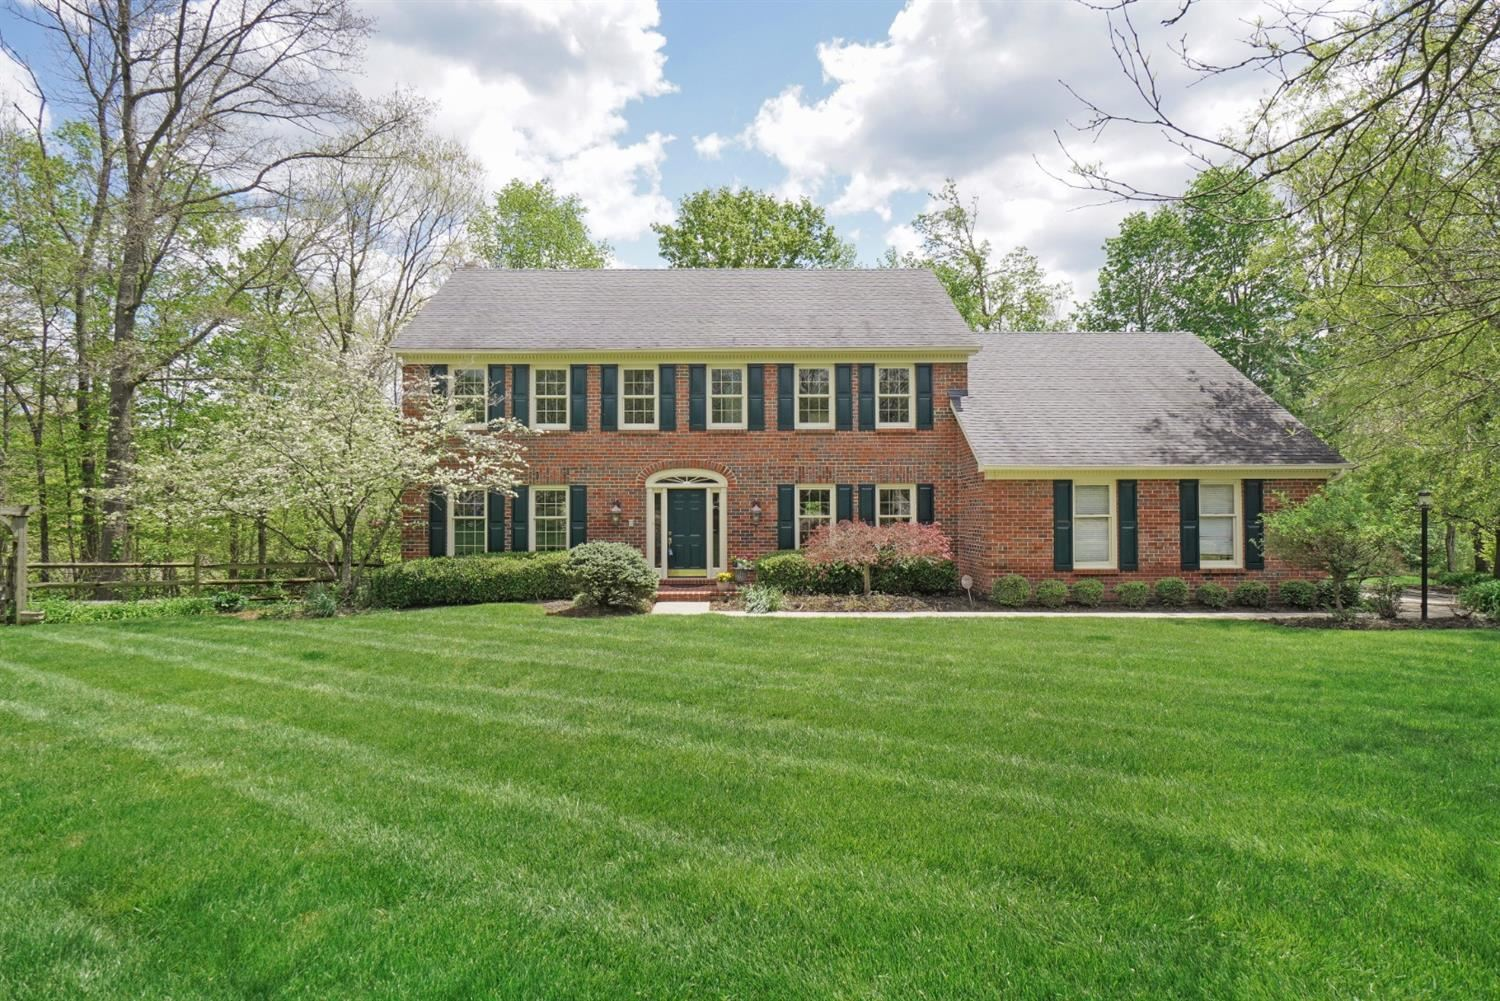 8977 Terwilligers View Court, Symmes Township, OH 45249 - #: 1659576